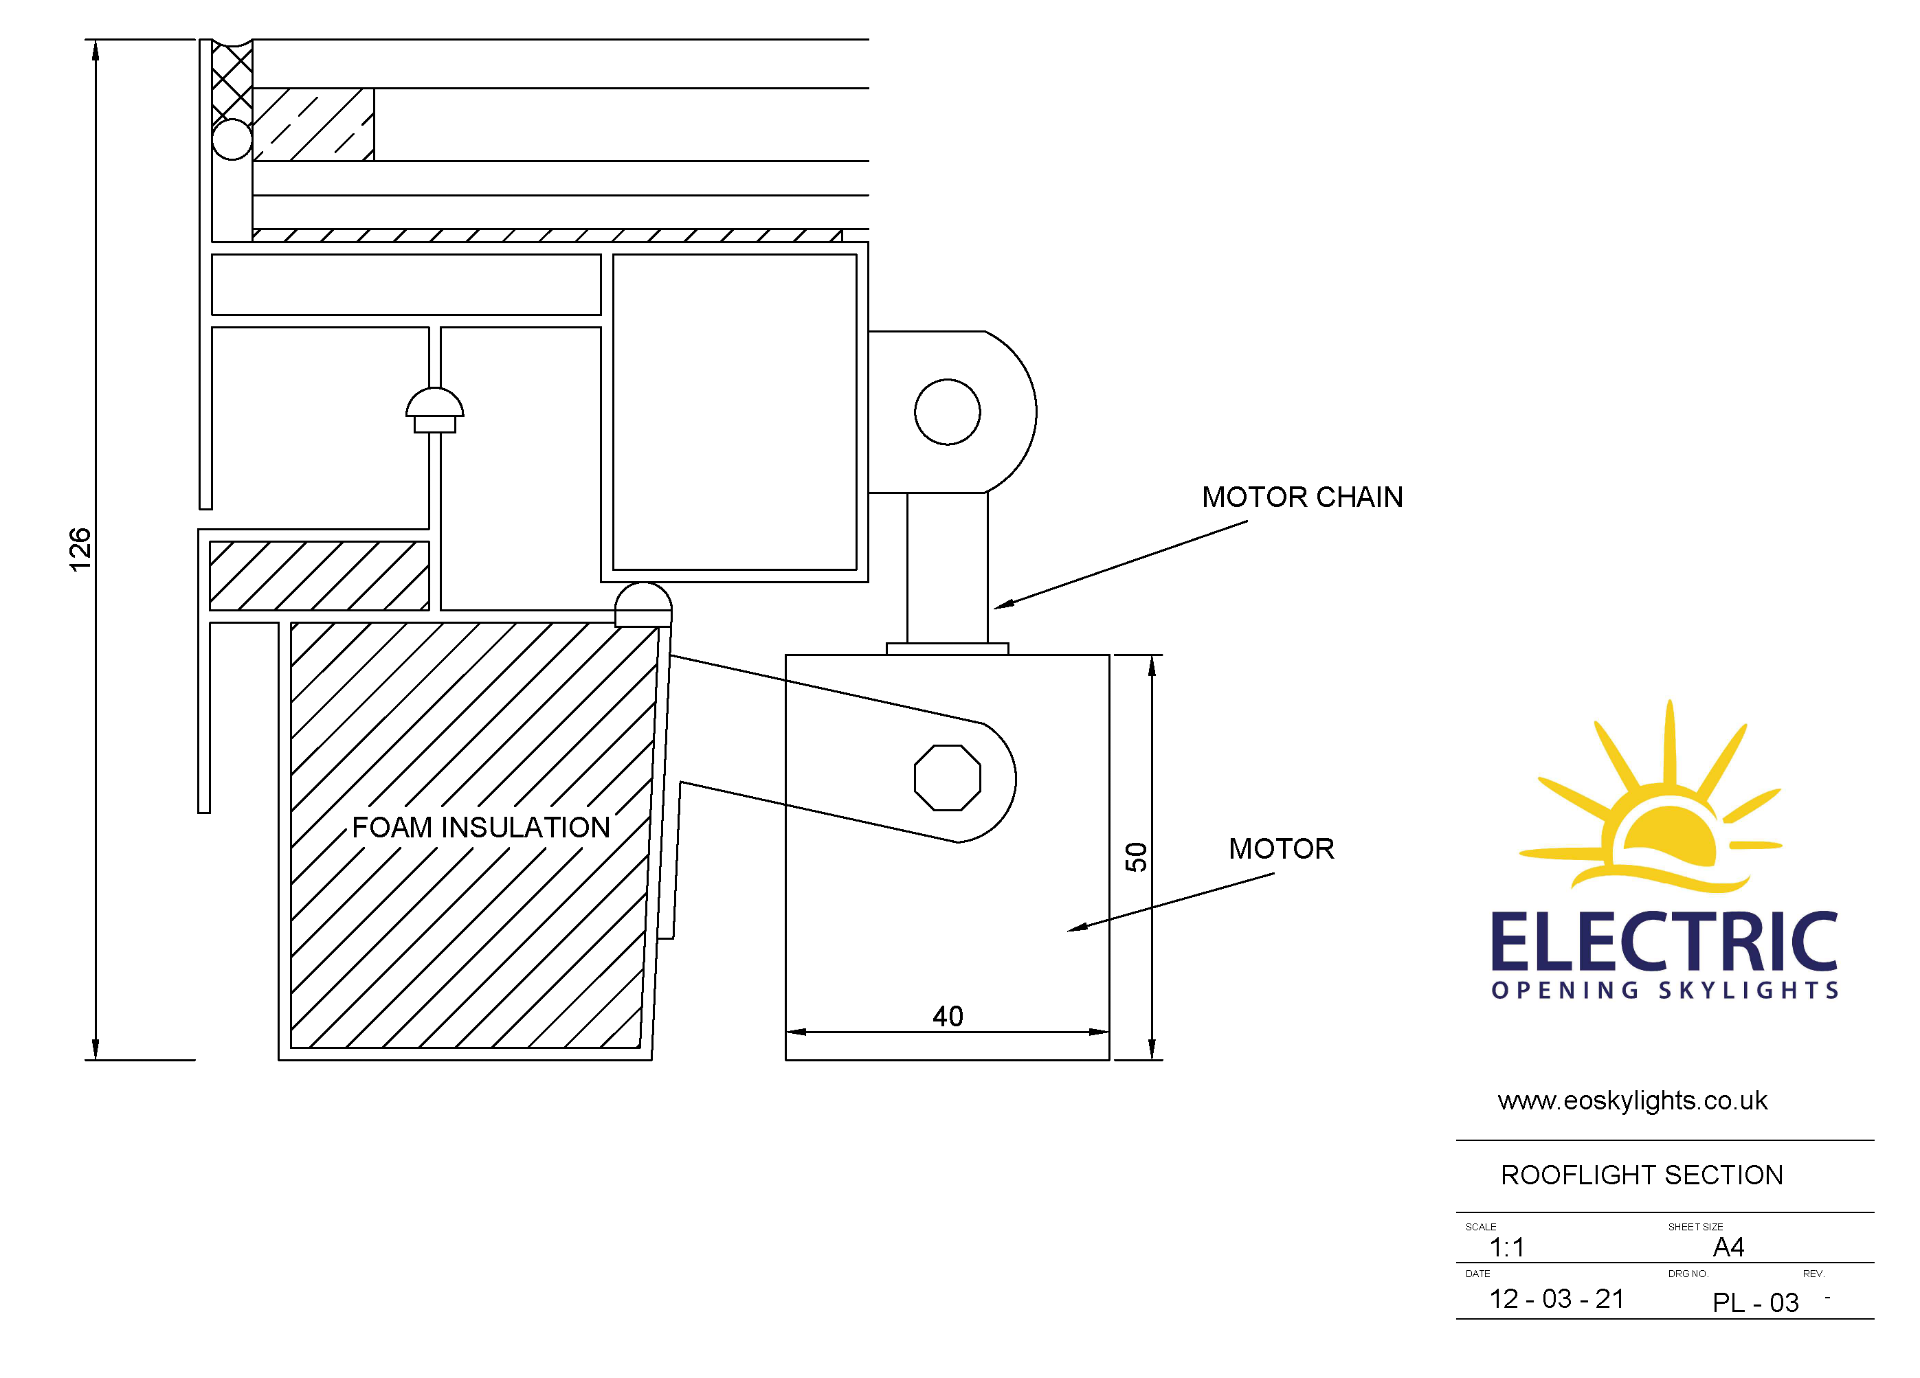 Panoroof (EOS) Electric Opening Skylight 800x1800mm - Aluminiun Frame Double Glazed Laminated Self- - Image 4 of 6